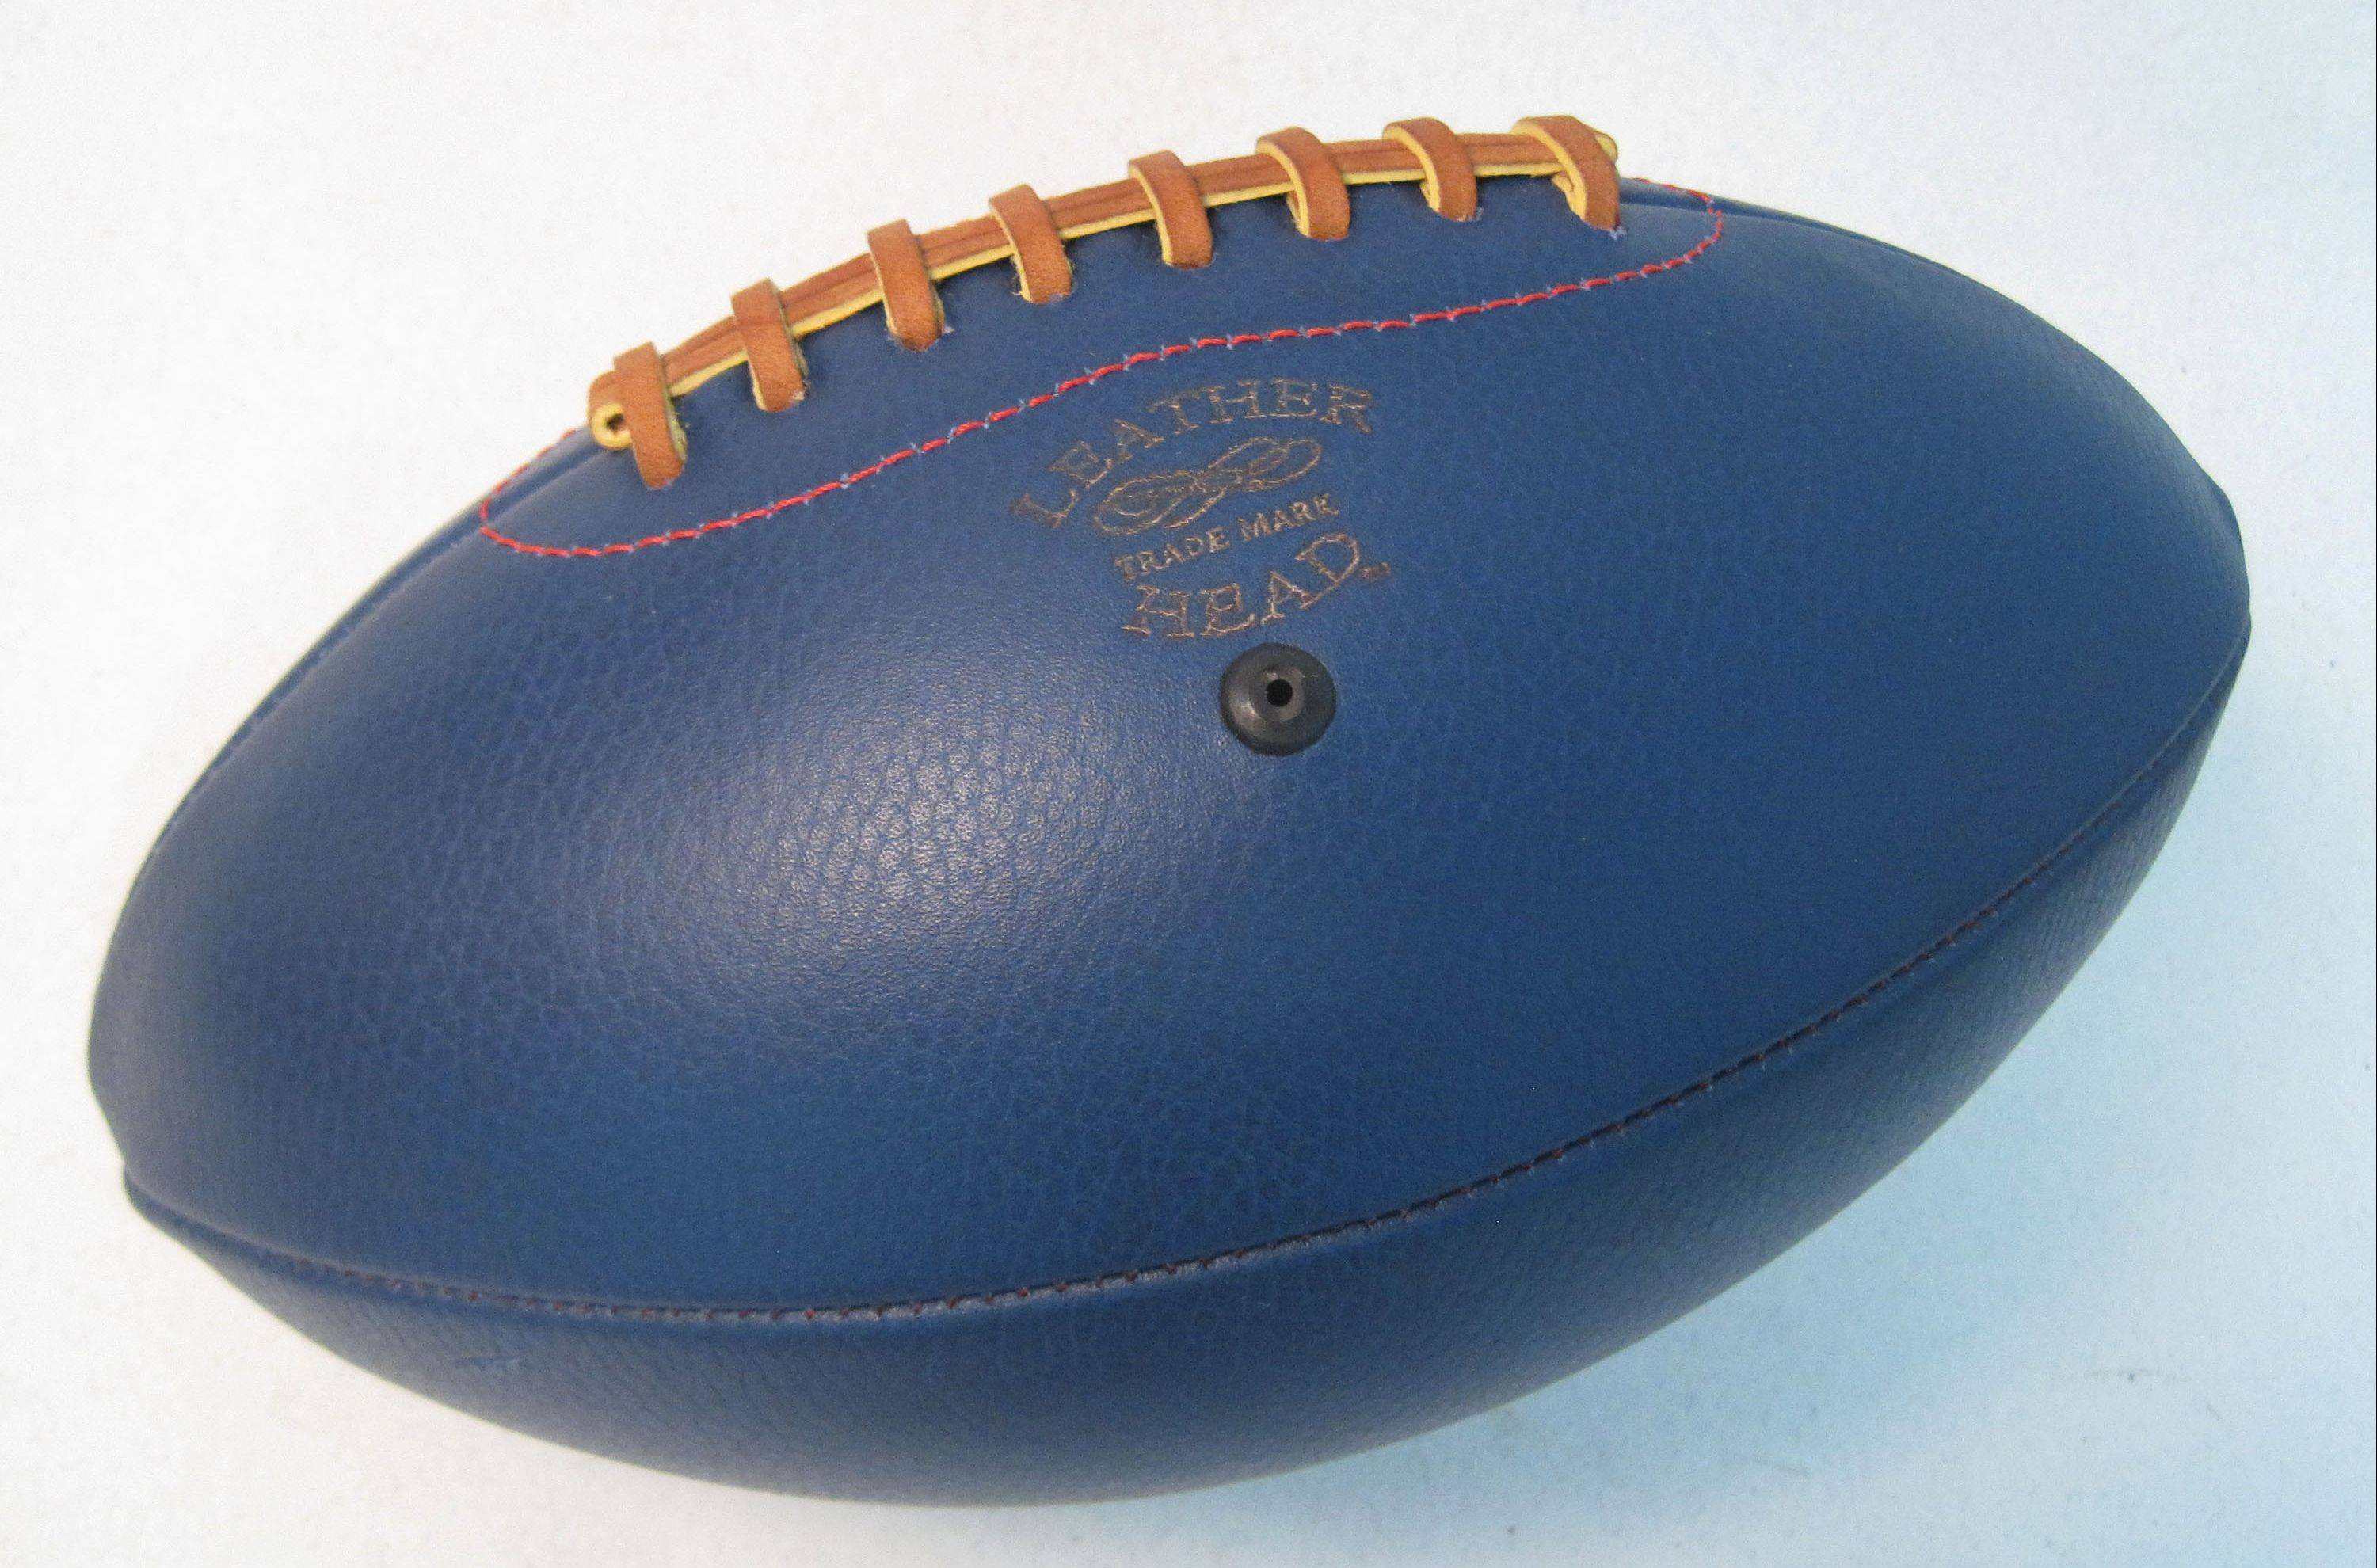 A Bespoke Global Big Blue, Leather Head Football by Paul Cunningham. This football is handmade from a beautiful hide of Royal Blue leather with a light pebble grain and stitched with red thread.